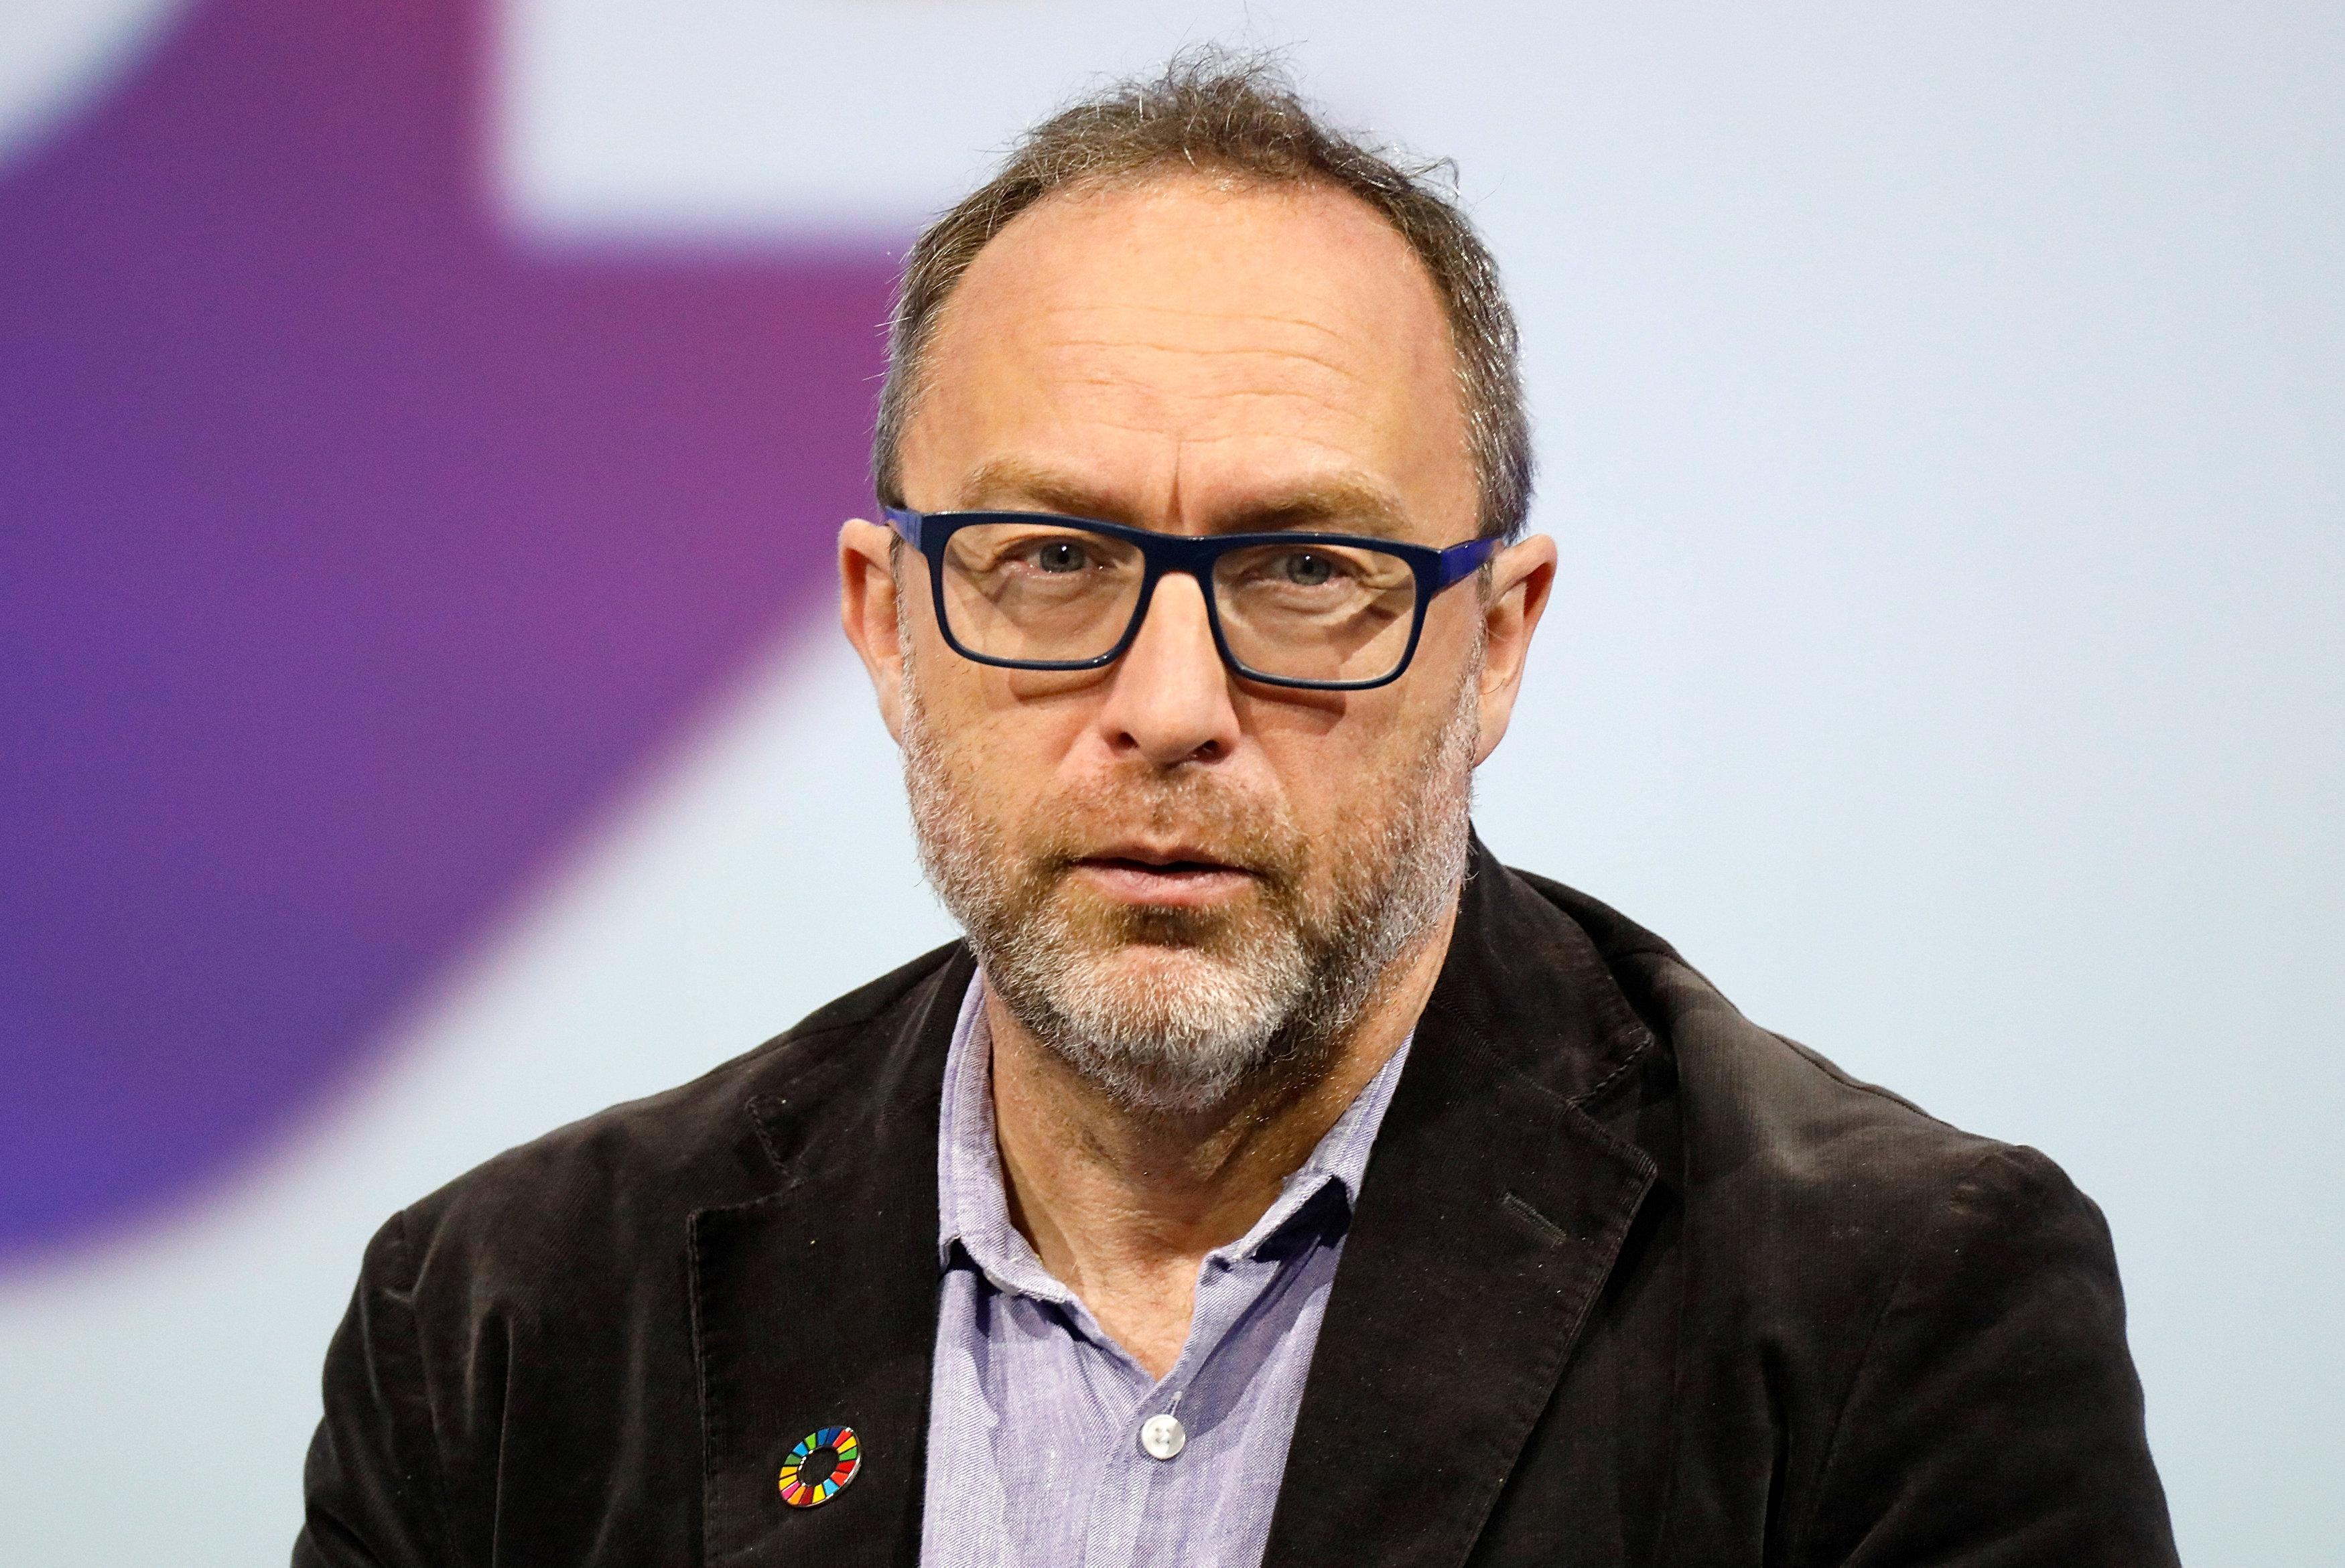 Wikipedia founder Jimmy Wales, attends the Viva Tech start-up and technology summit in Paris, France, May 24, 2018. Charles Platiau